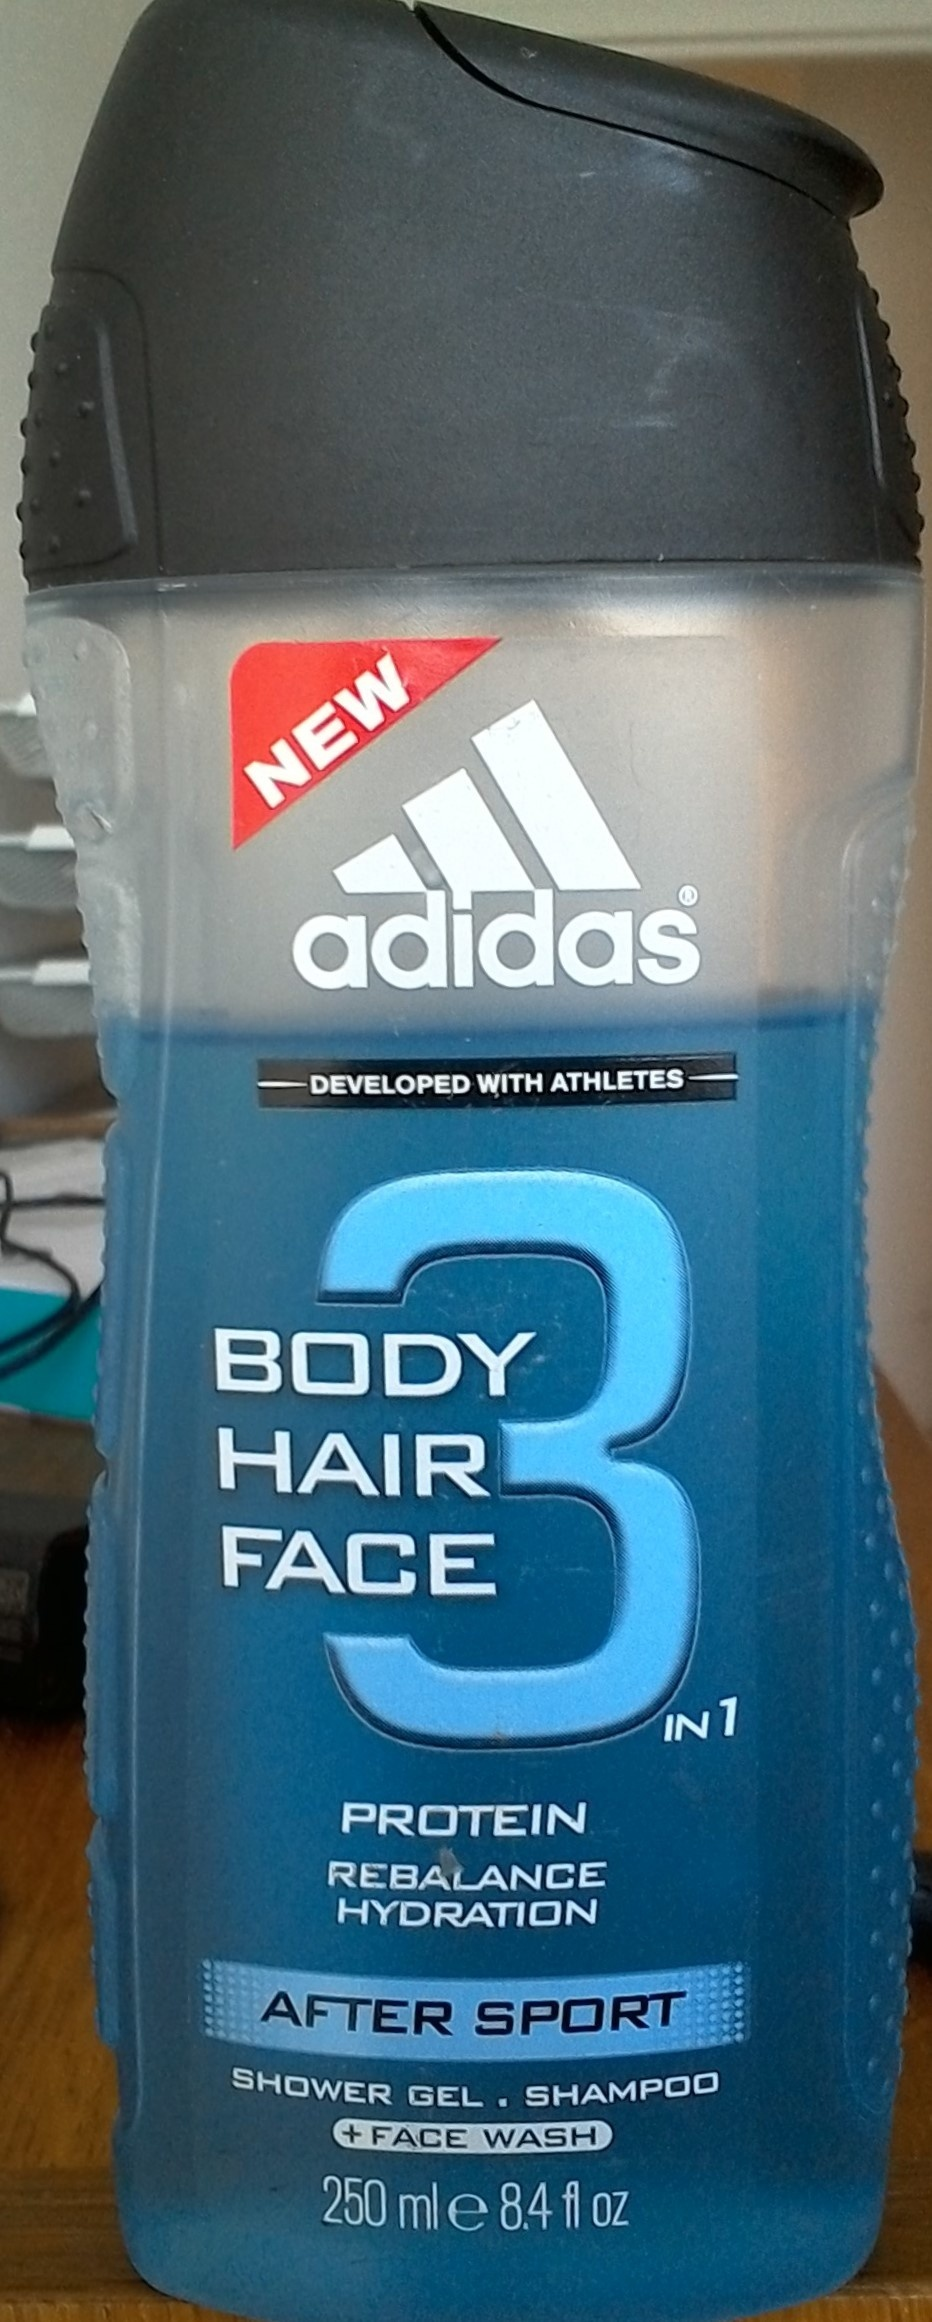 Body hair face - After sport - Product - fr